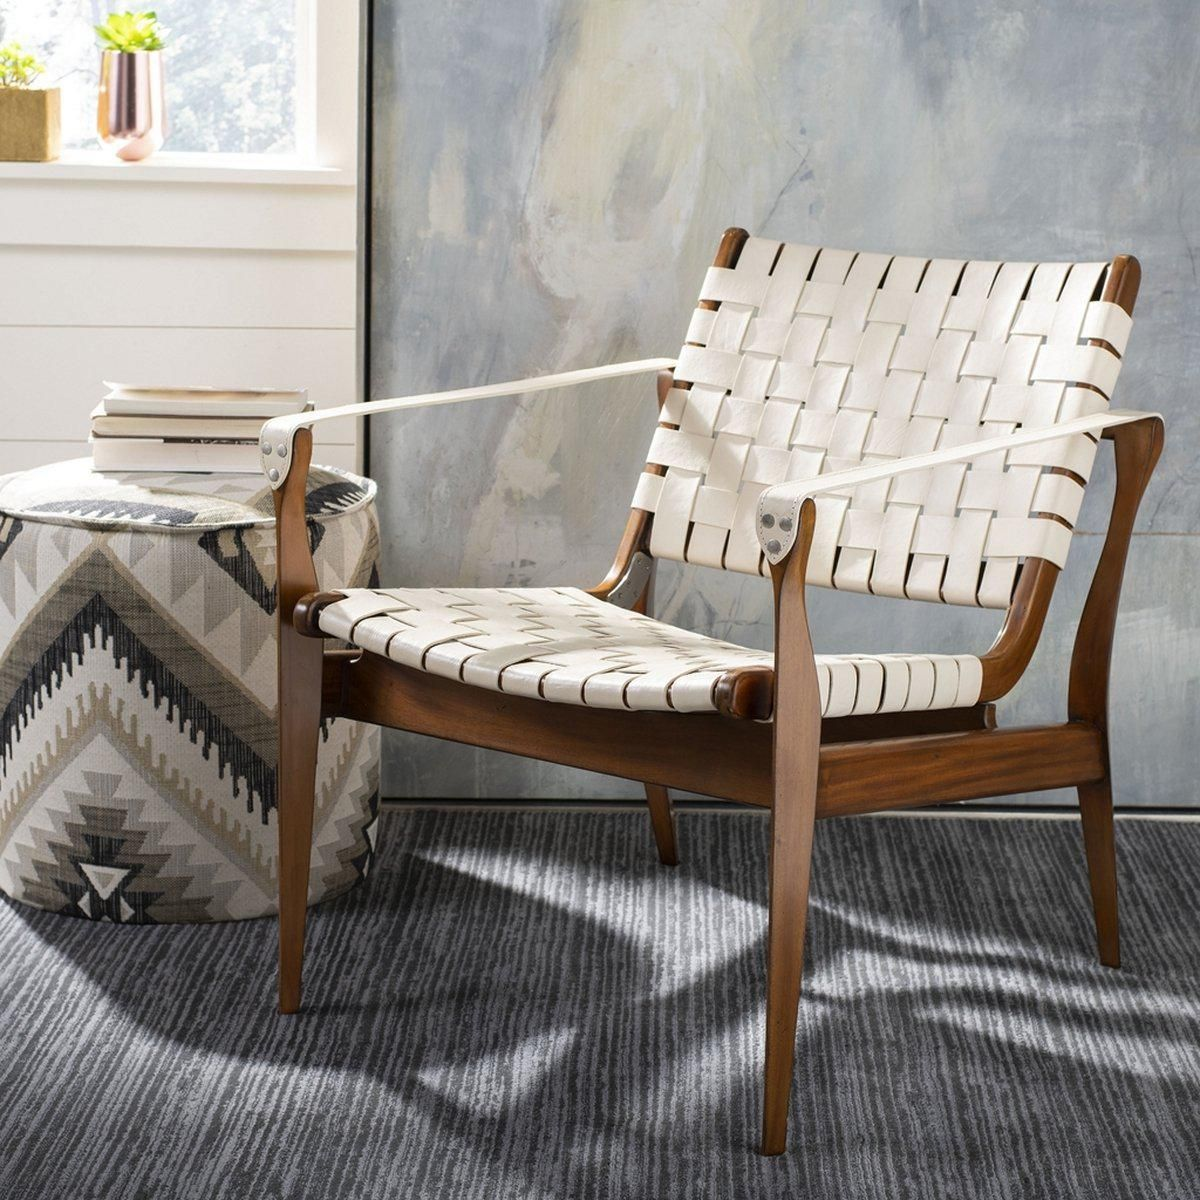 49+ Leather living room chairs canada ideas in 2021